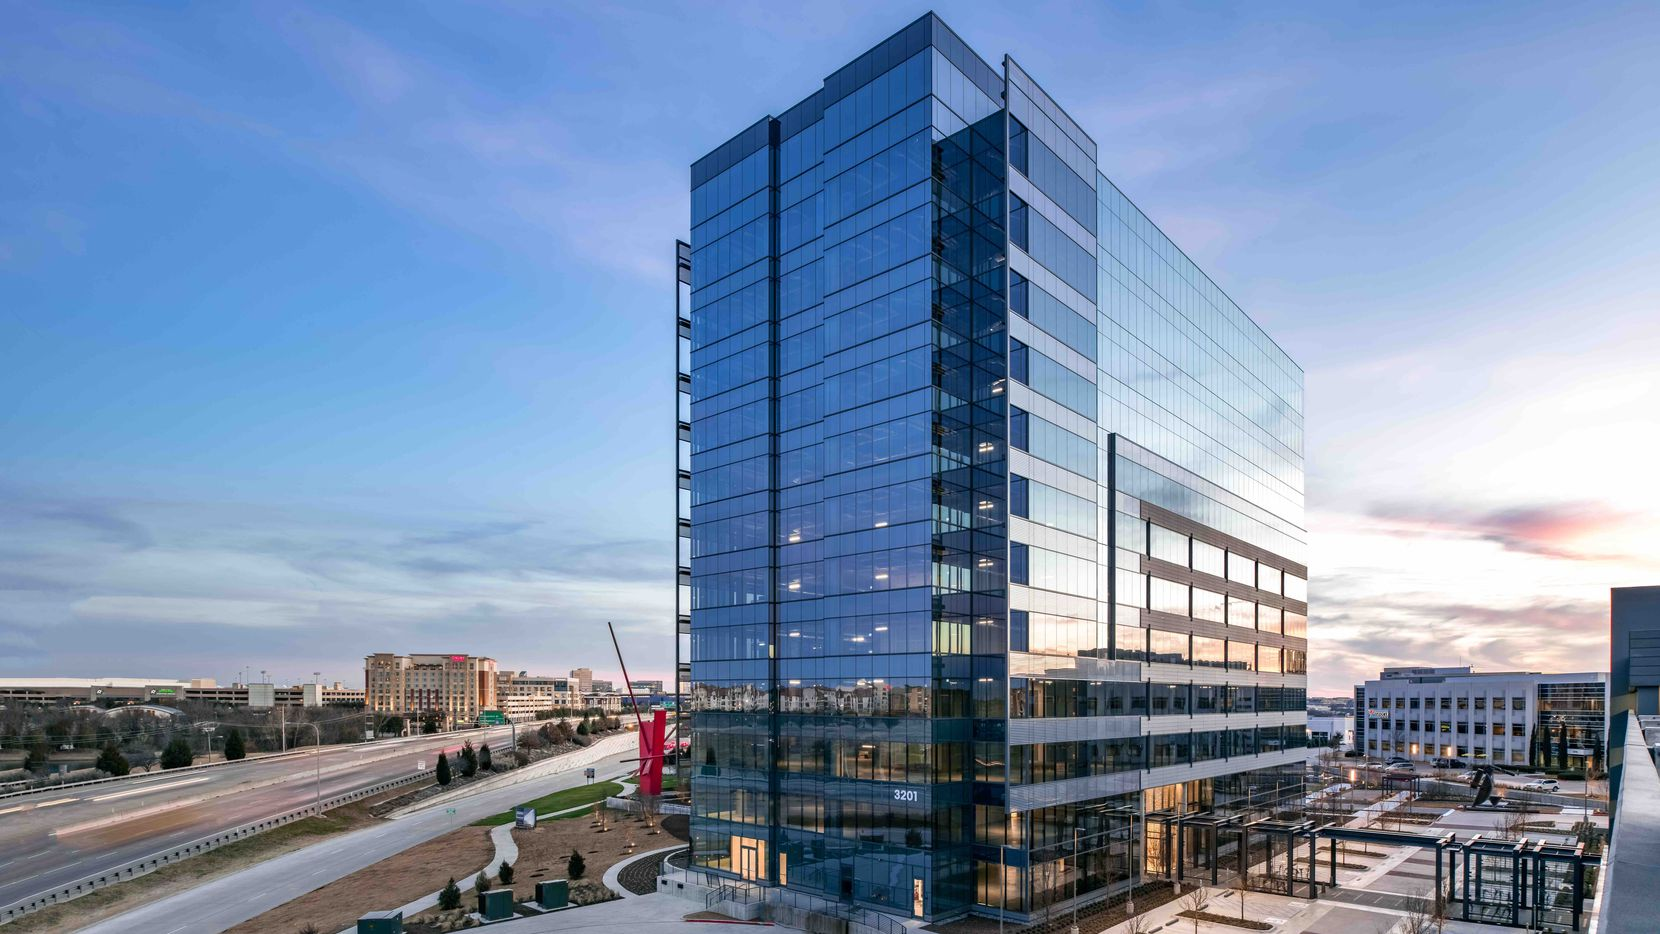 Co-working firm Serendipity Labs has leased space in Frisco's new 3201 Dallas Parkway tower.